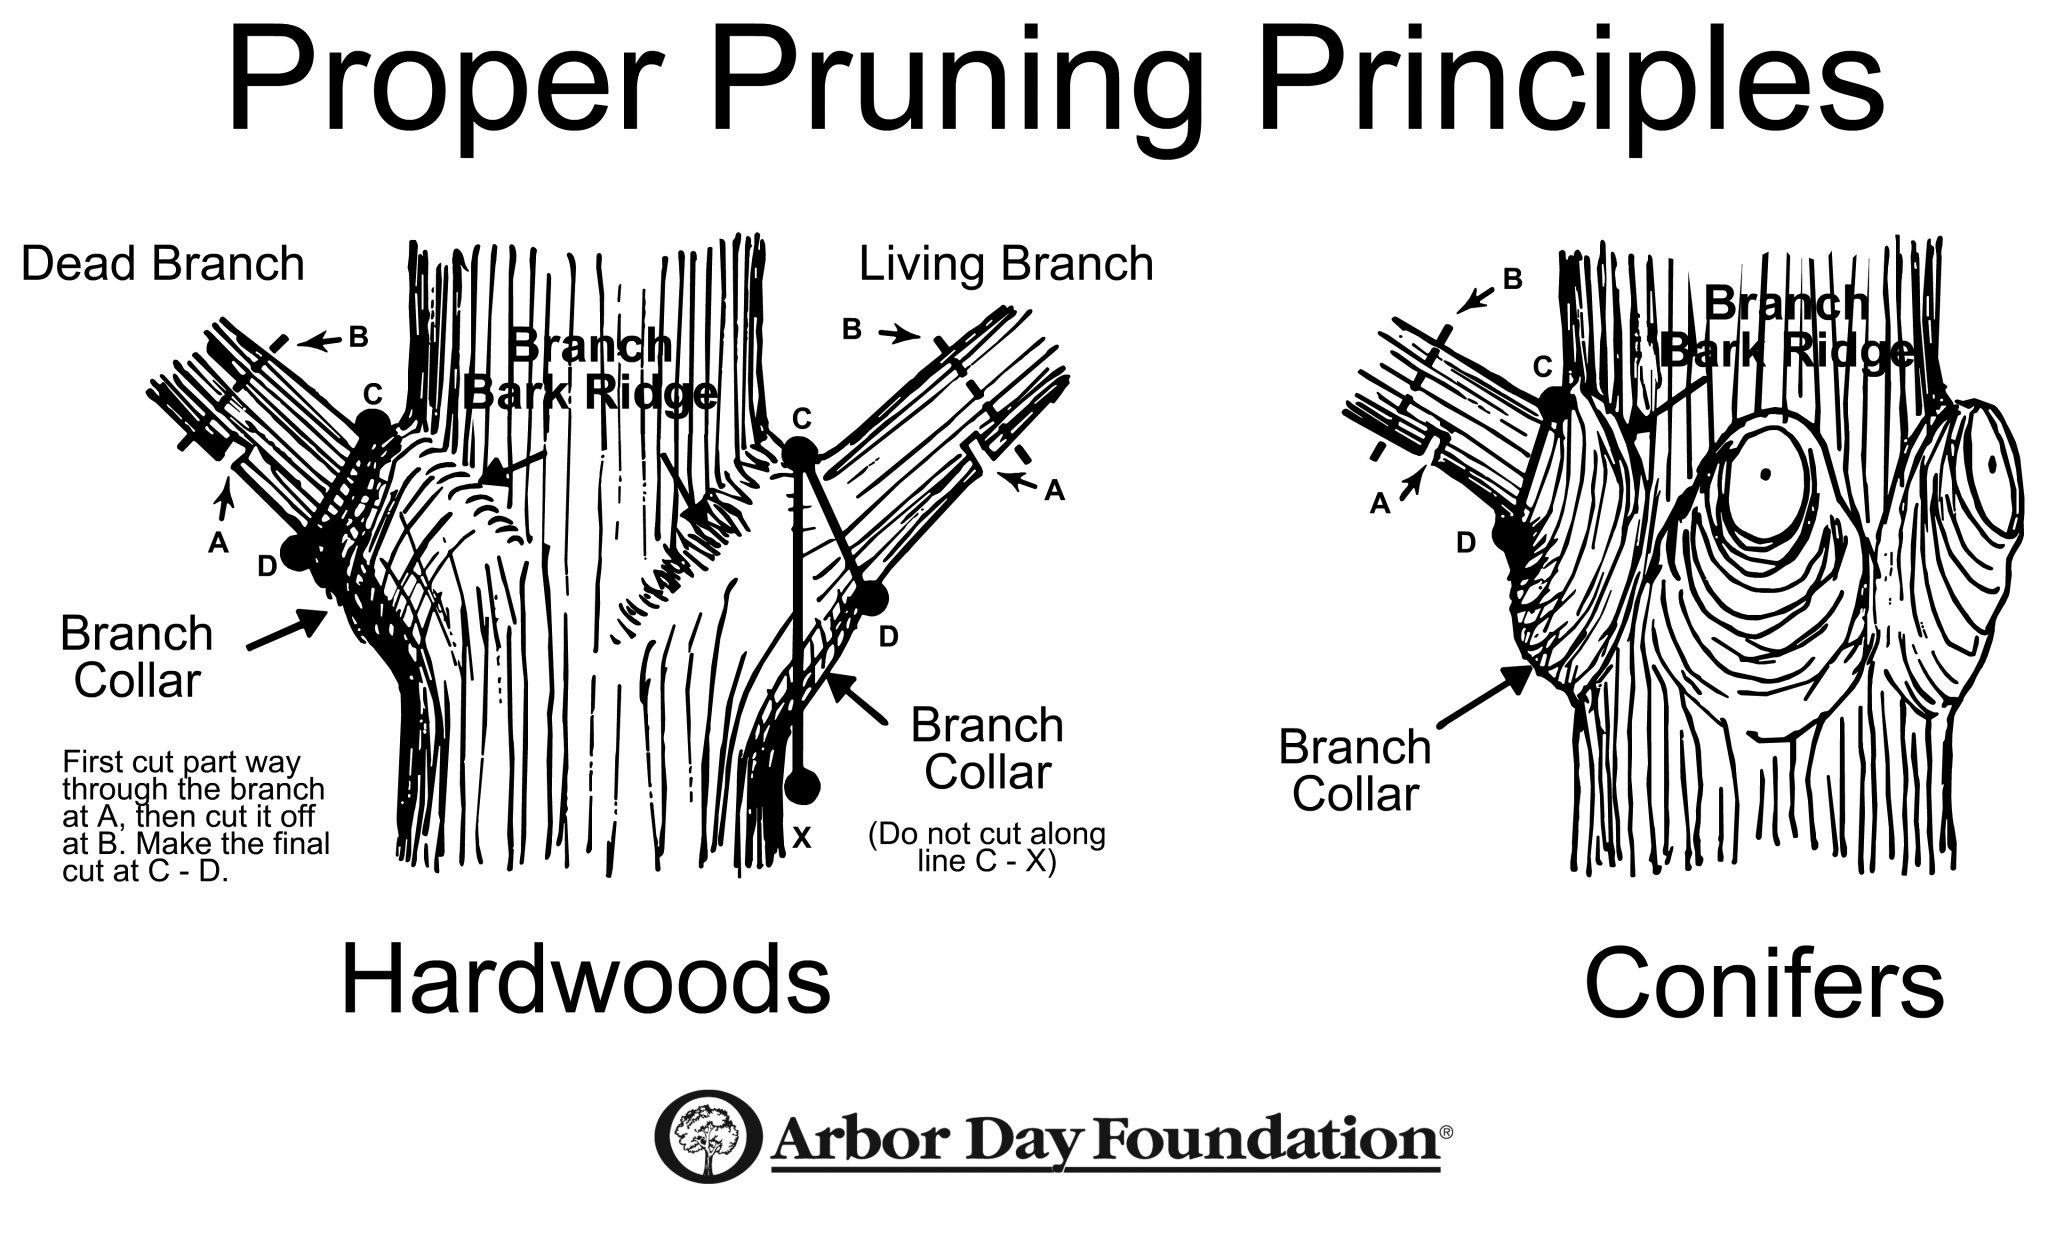 branches branching tree diagram baldor 7 5 hp single phase motor wiring pruning time six weeks before buds open the